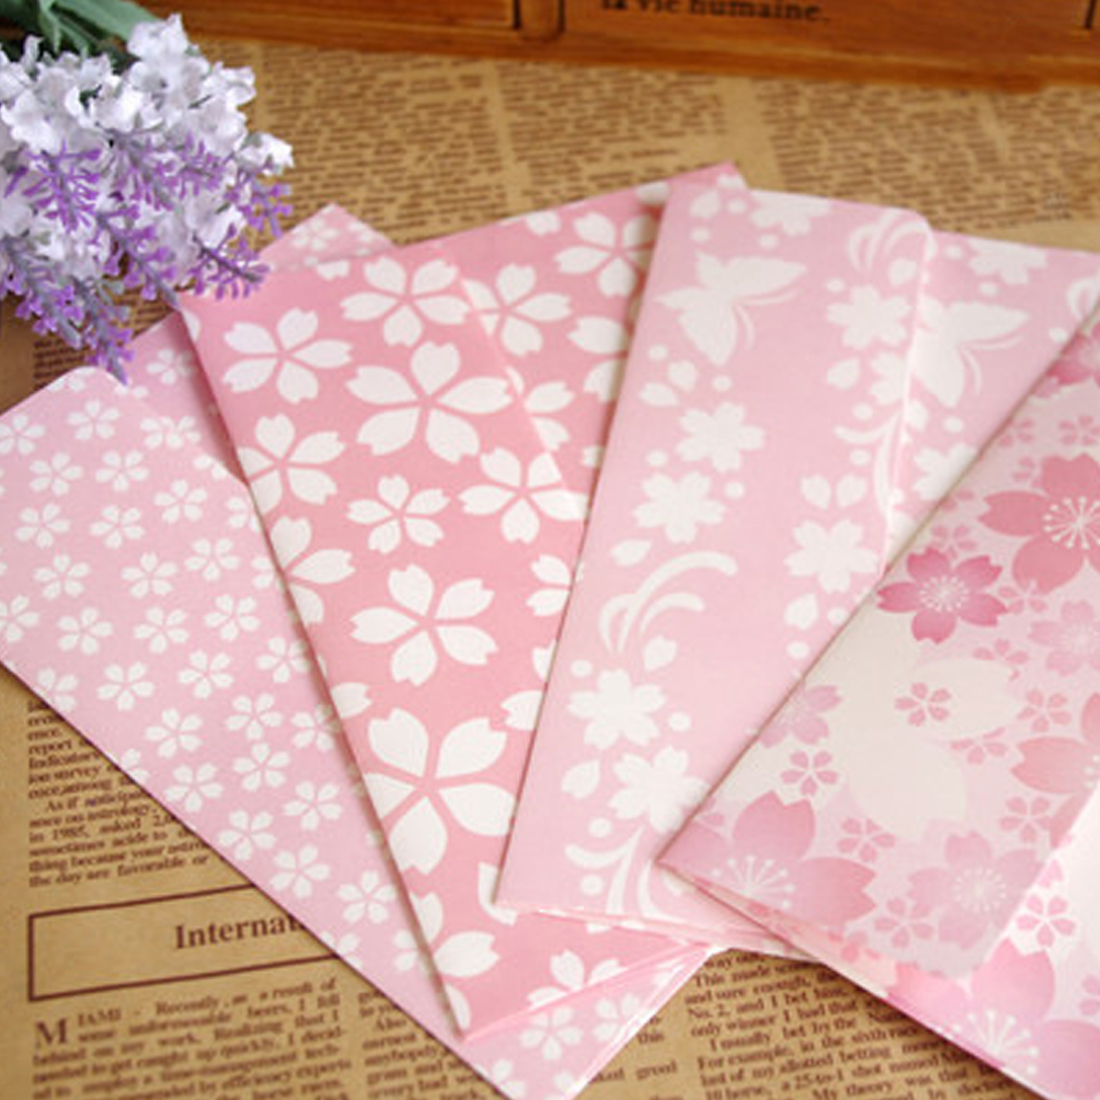 FangNymph Beautiful Cherry Blossoms Envelope Letterhead Letter Paper Elegant Floral Envelopes Love Letters 17.5*12.5cm